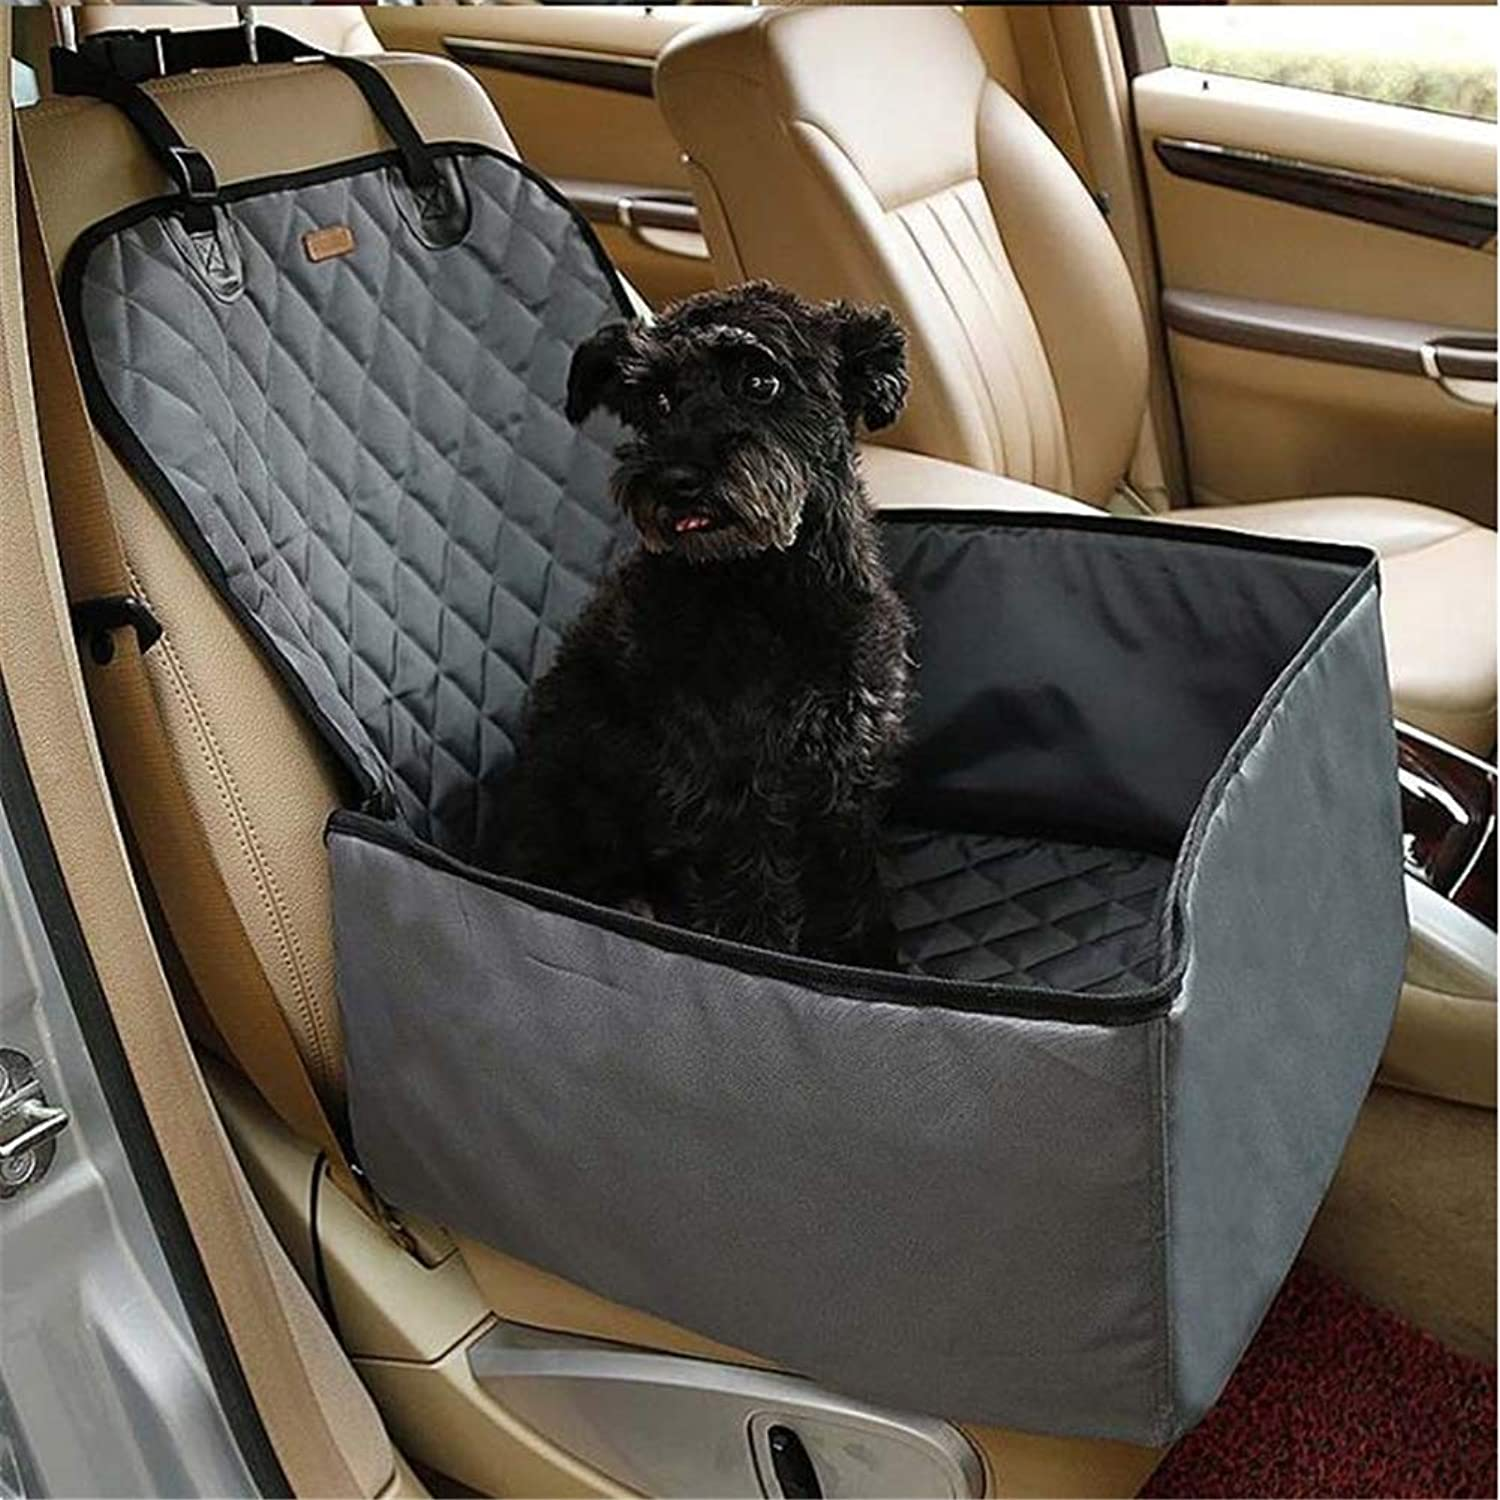 Dog Car Seat Covers 2 in 1 Carrier Bucket Basket Car Travel Accessories Waterproof Nylon Dog Pet Car Carrier Carry Storage Bag Booster Seat Cover